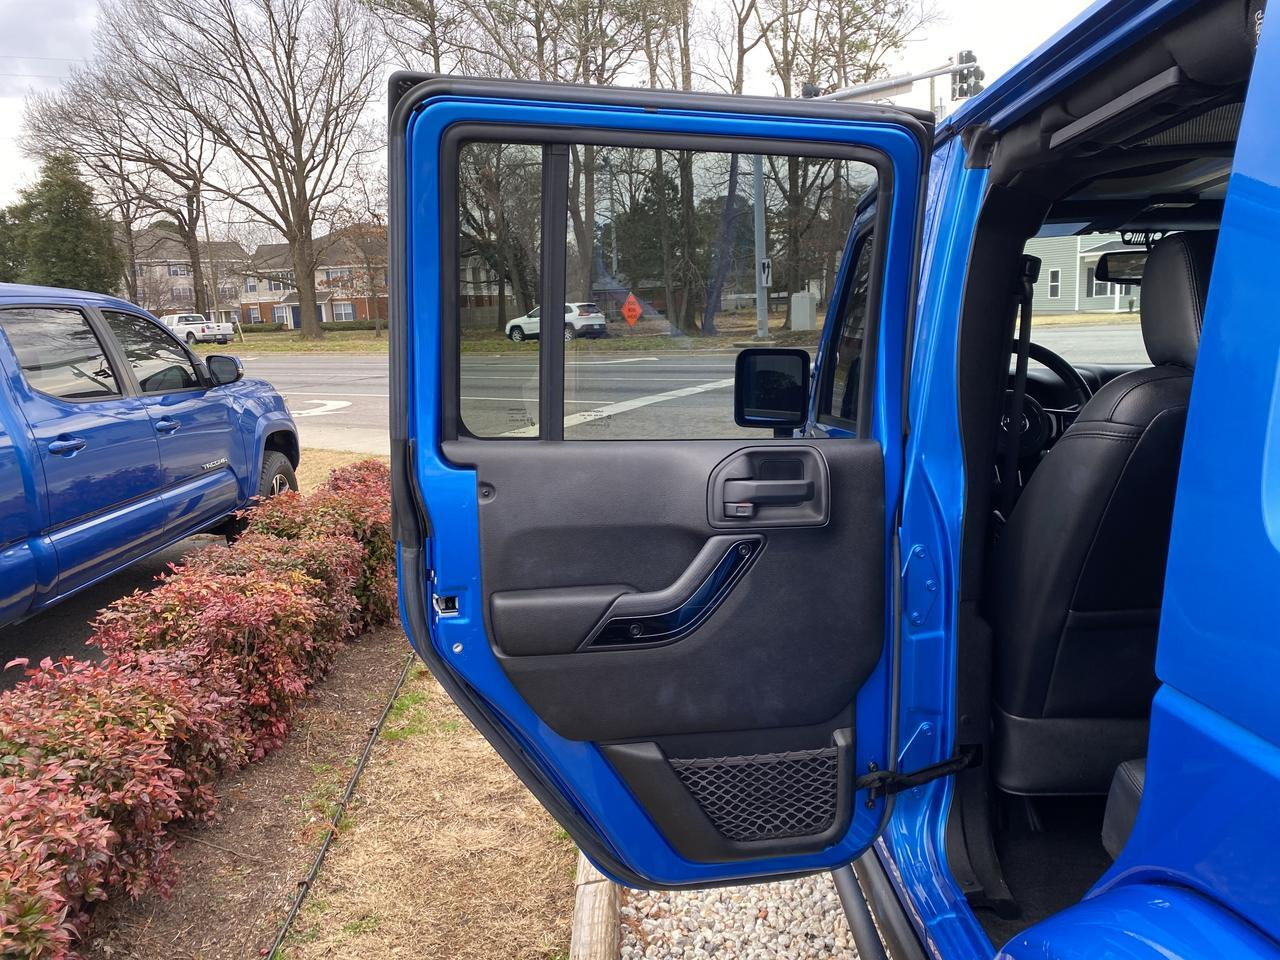 2015 JEEP WRANGLER UNLIMITED SAHARA ALTITUDE 4X4, WARRANTY, LEATHER, HARD TOP, NAVIGATION, HEATED SEATS, BLUETOOTH! Norfolk VA